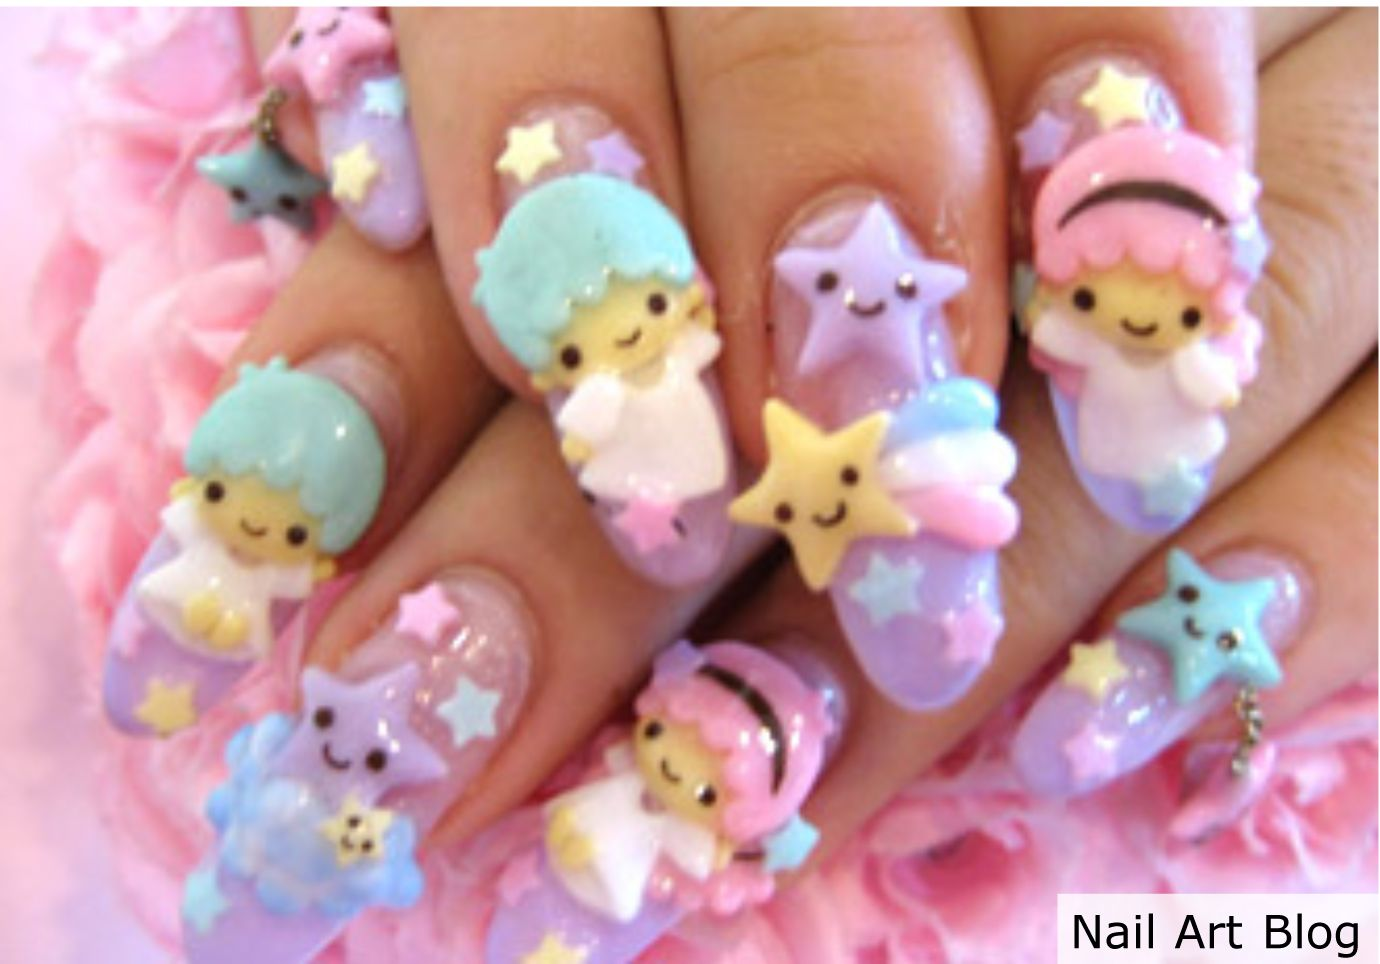 Nail Art Design Pictures 2 | How hot would we look if we could rock ...